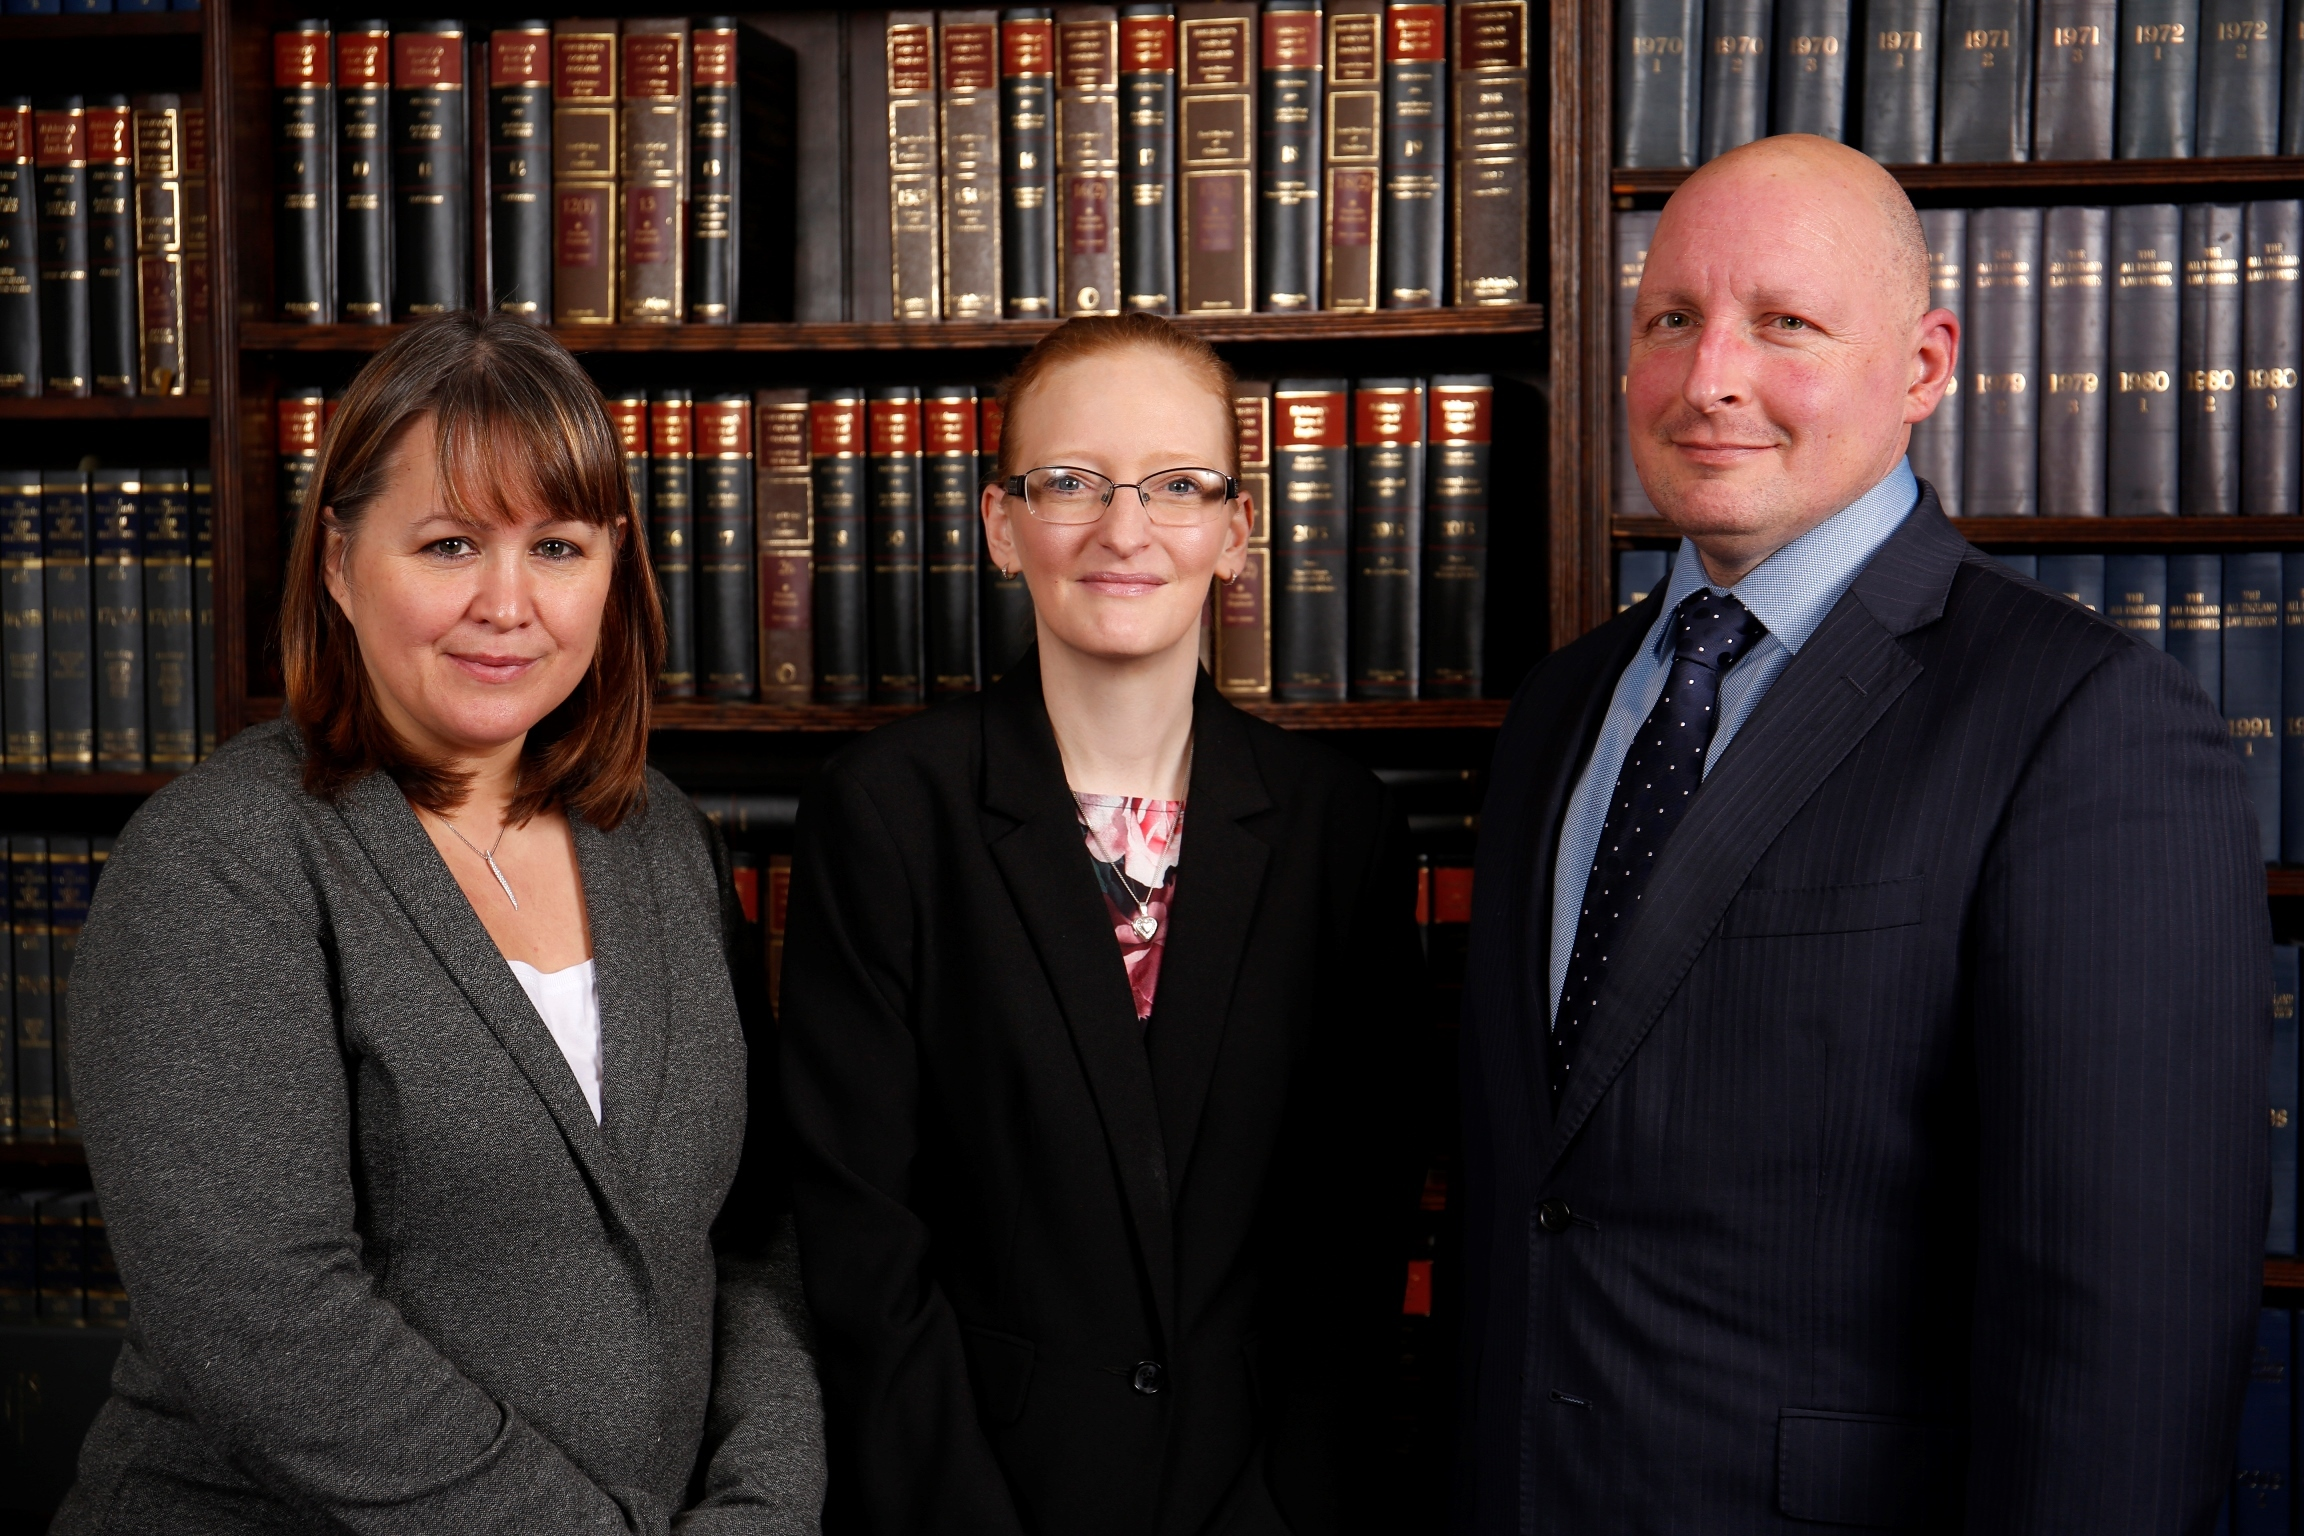 NEW FACE: From left, Lorraine Stratton-Webb, Kelly Fitton and Lee Marston